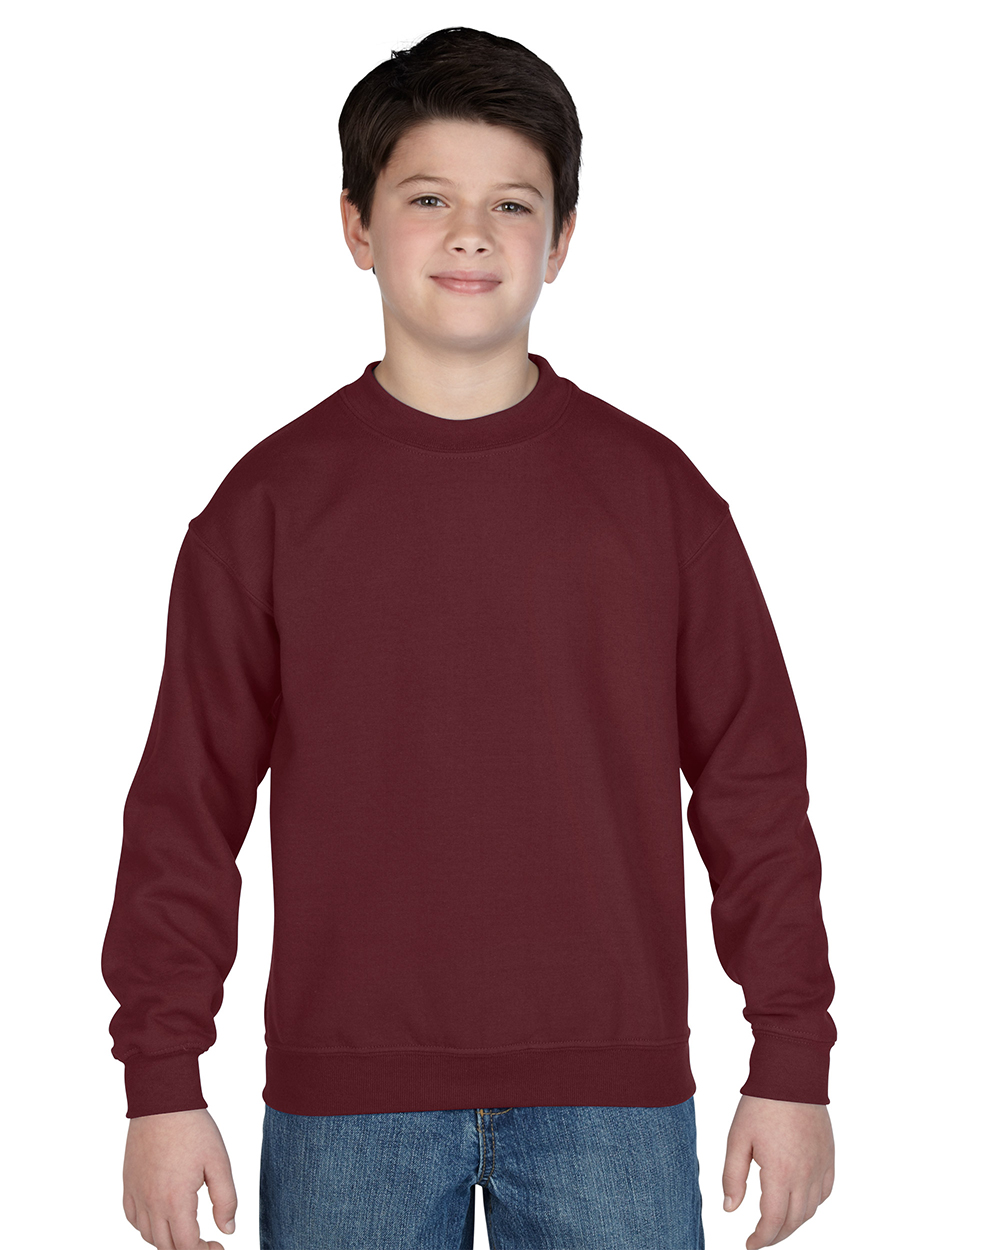 Gildan 18000B     Classic Fit Youth Crewneck Sweatshirt    50% Cotton / 50% Polyester Fleece